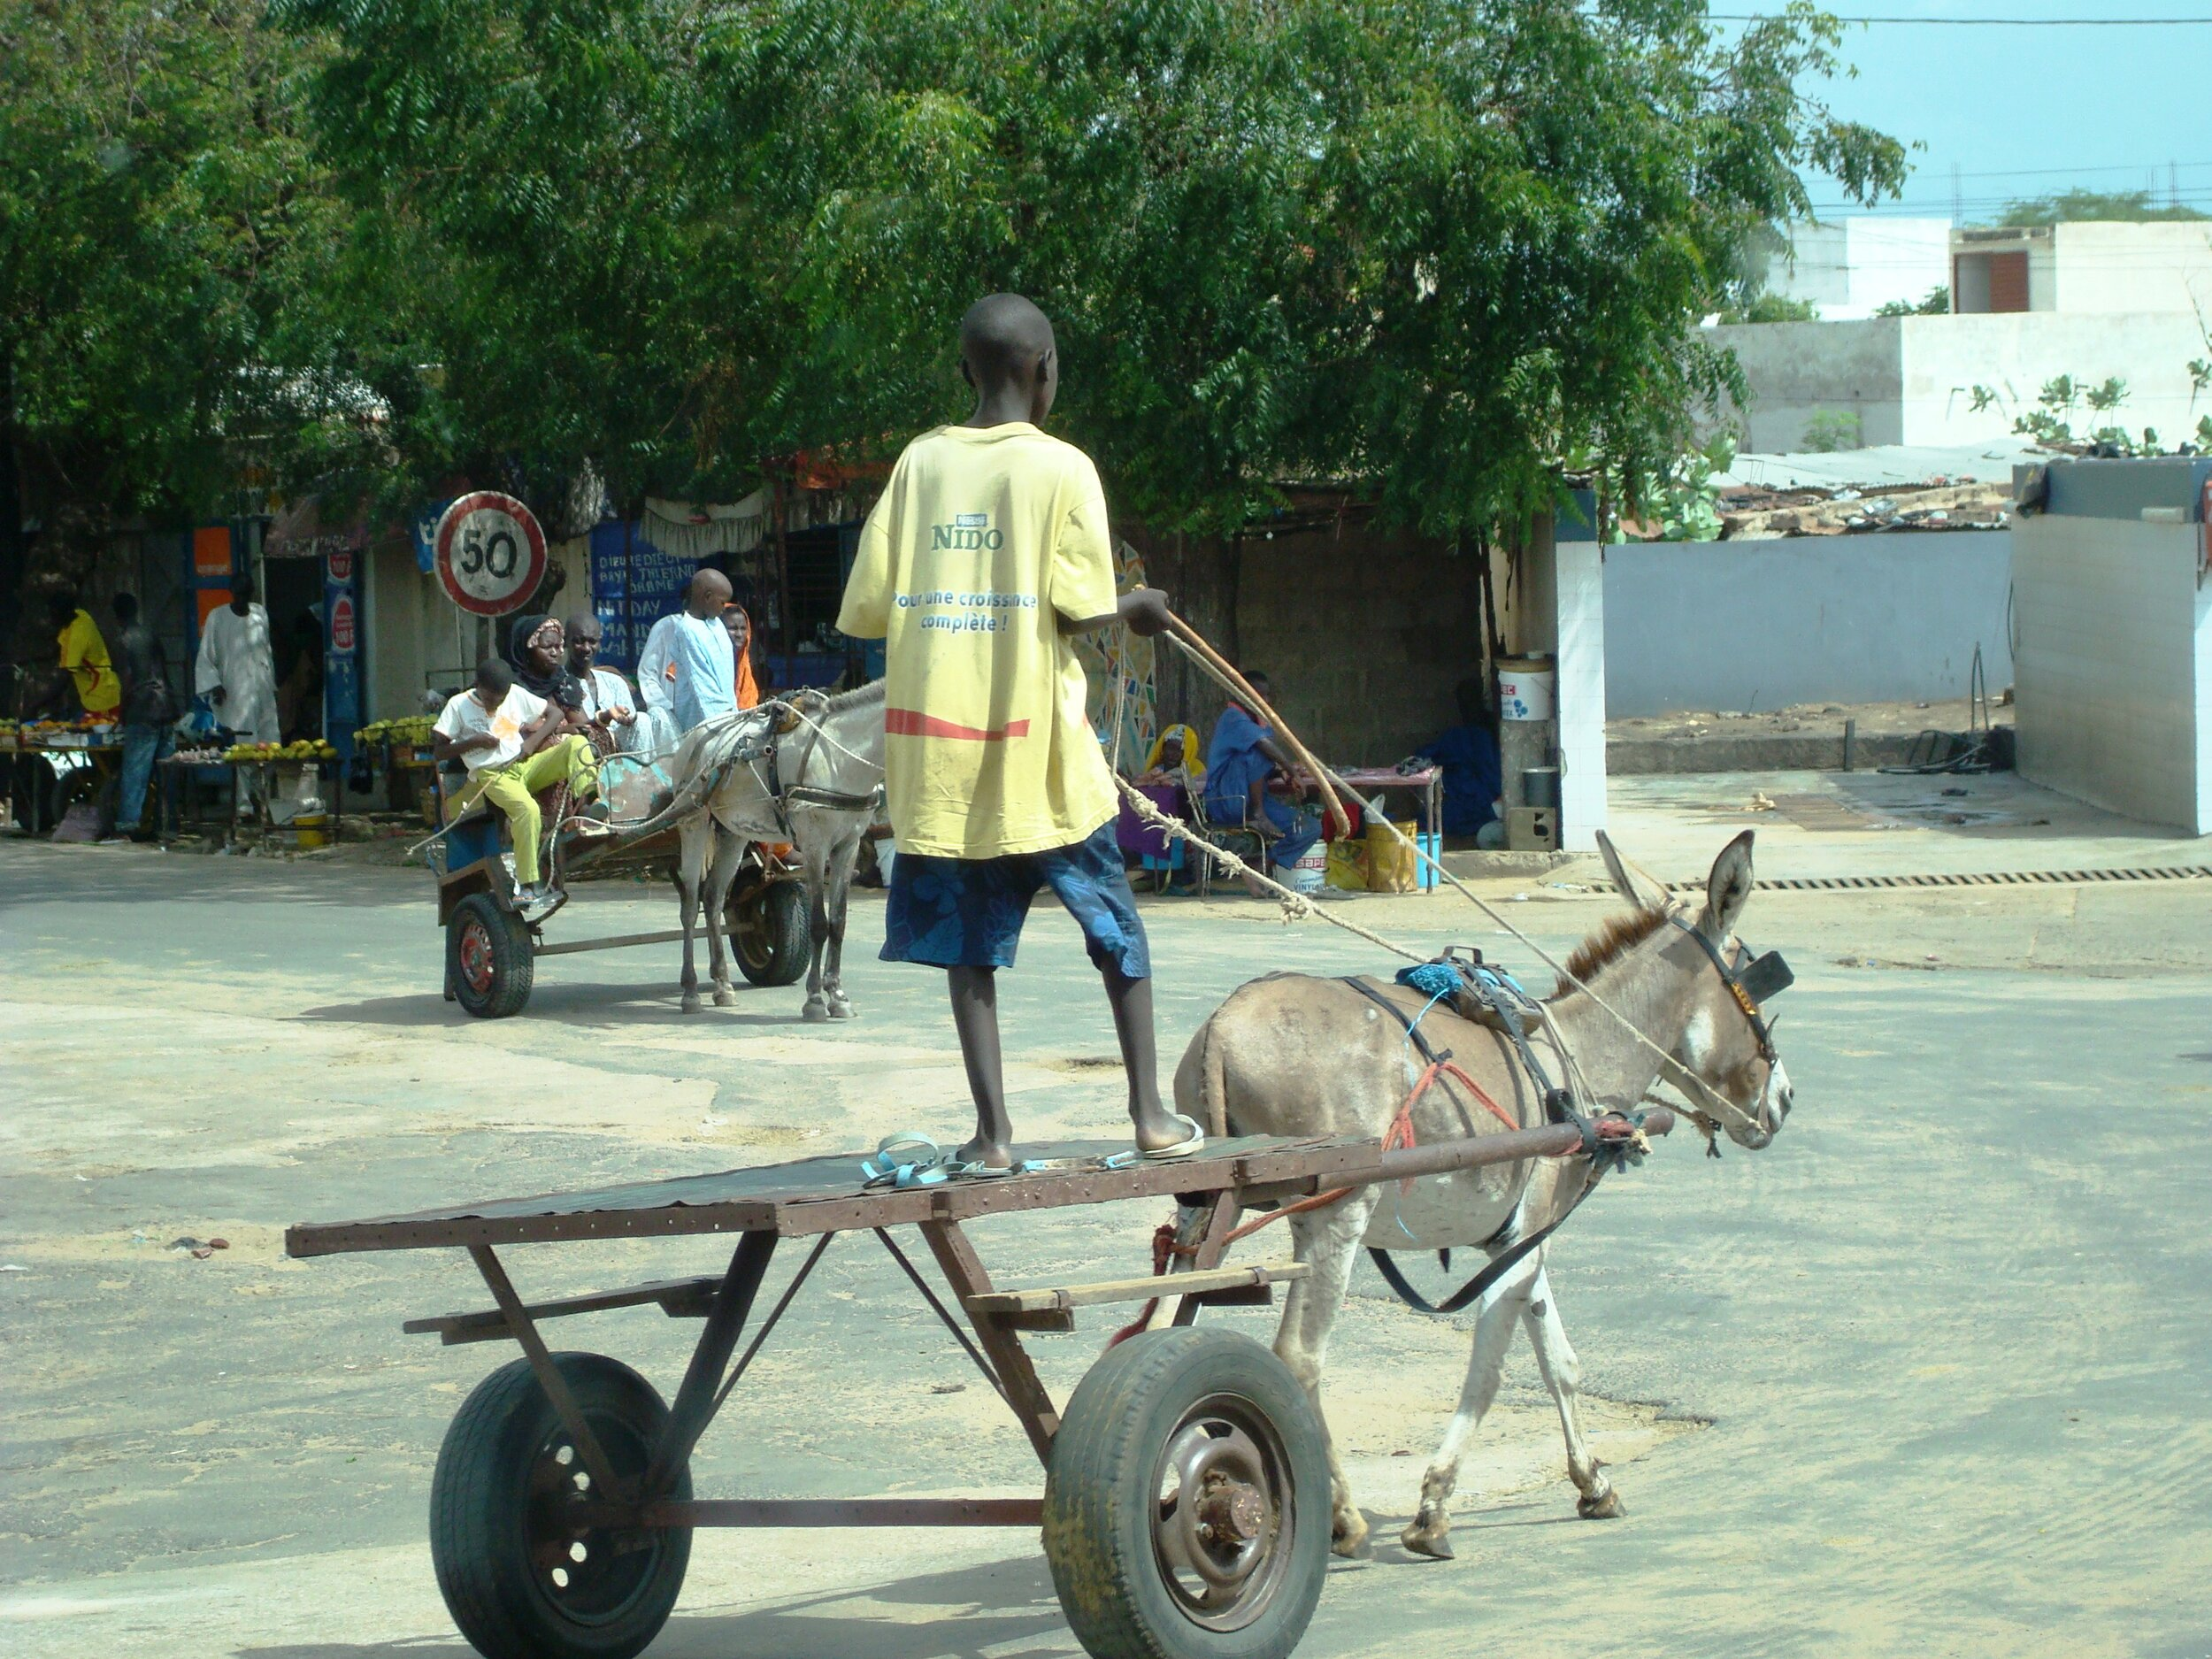 My photo: Scene in Thies, Senegal, West Africa, 2008